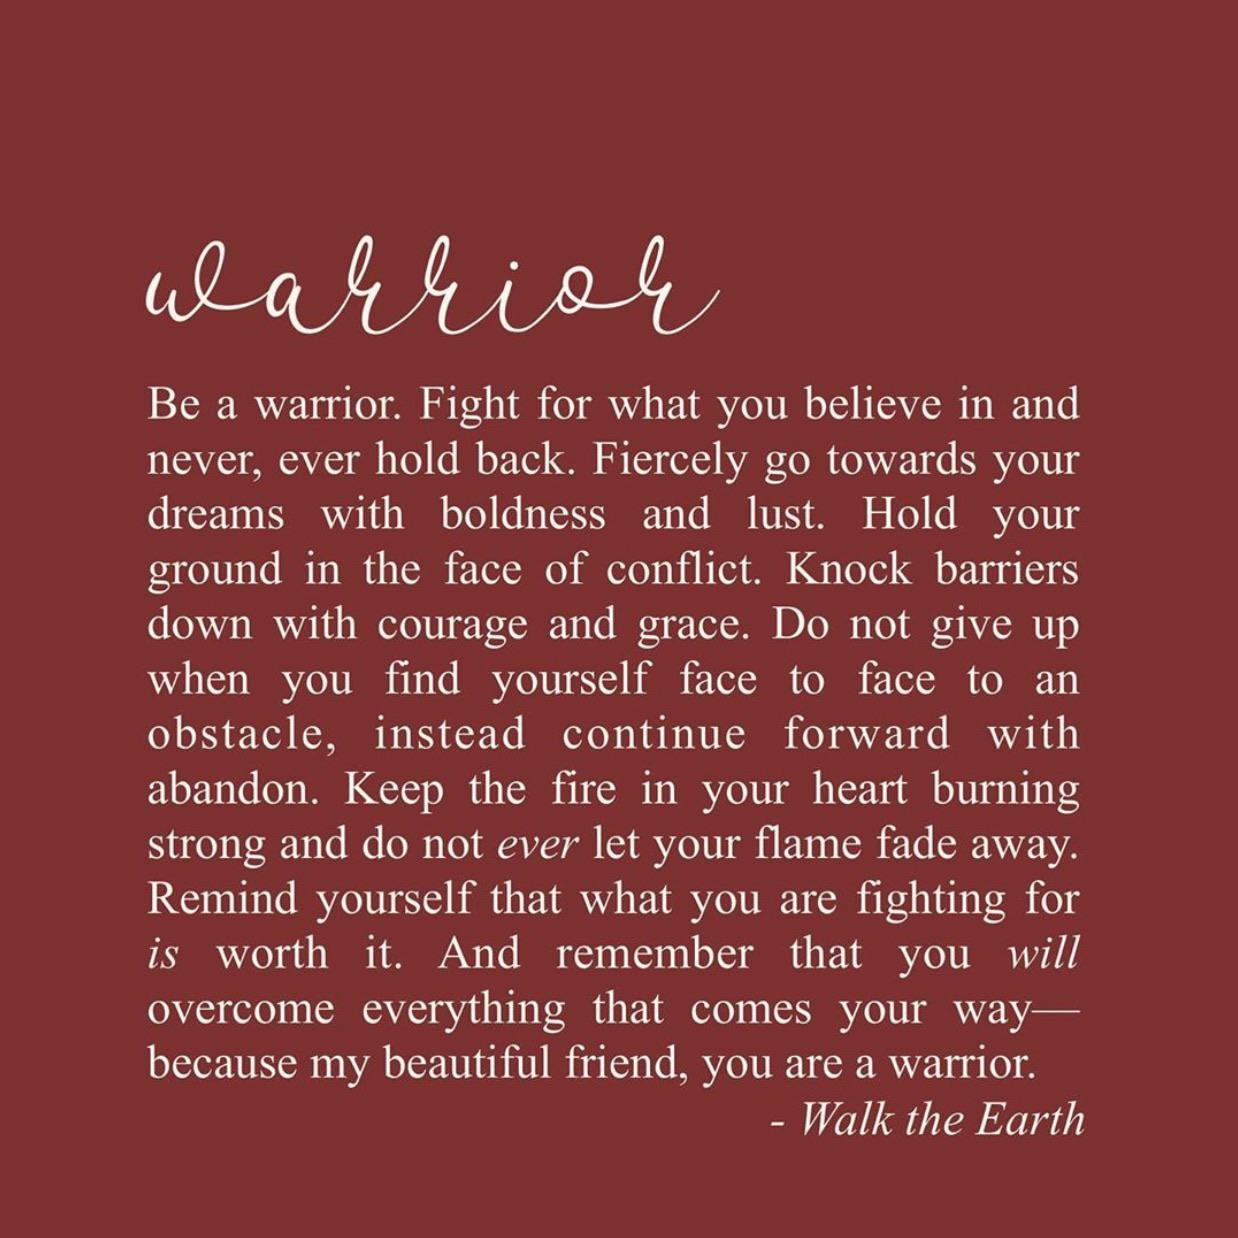 [Image] Warrior.